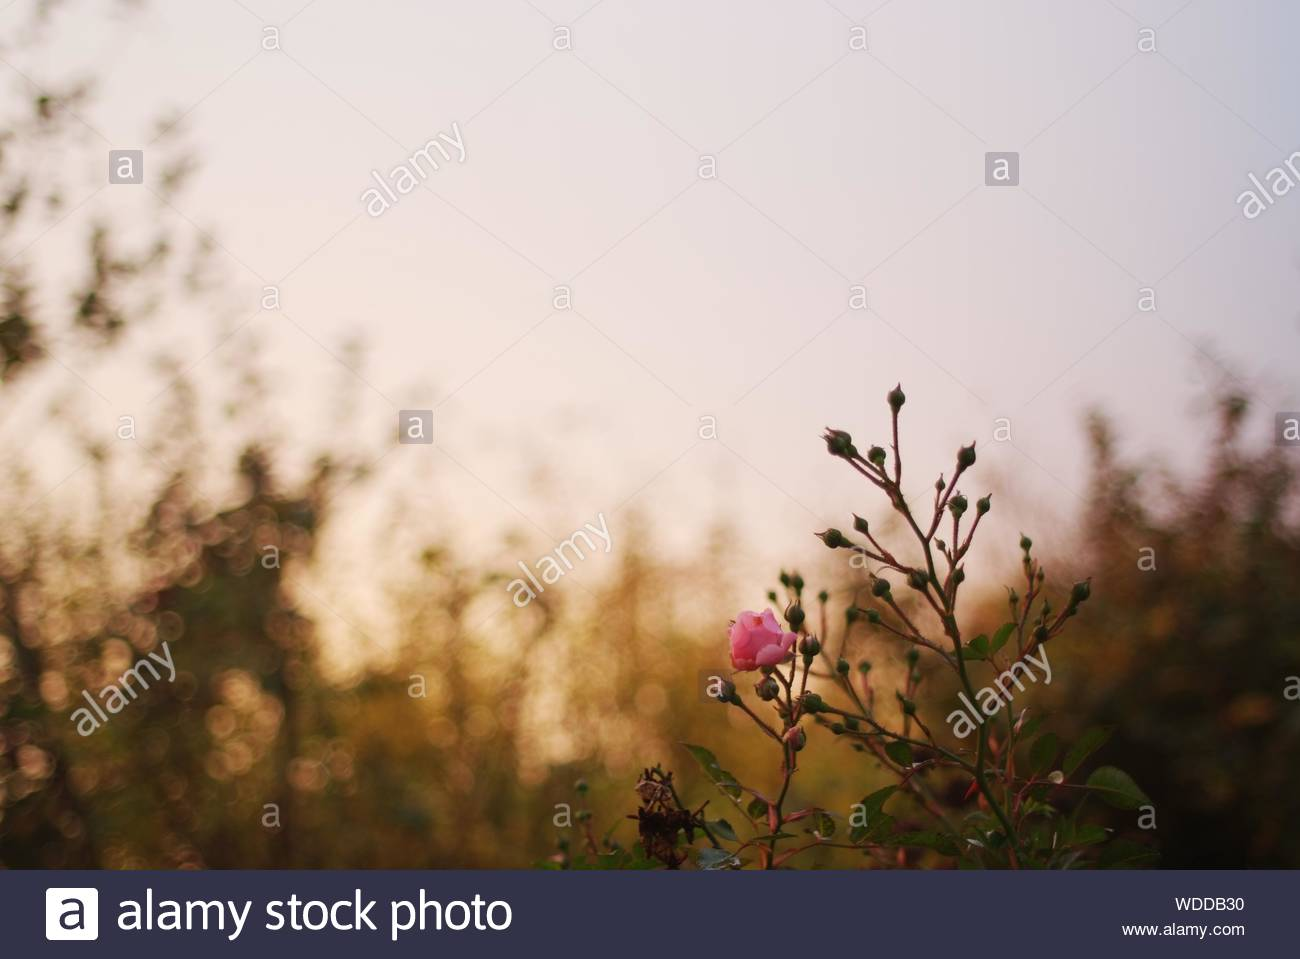 Close-up Of Plant Against Blurred Background Stock Photo